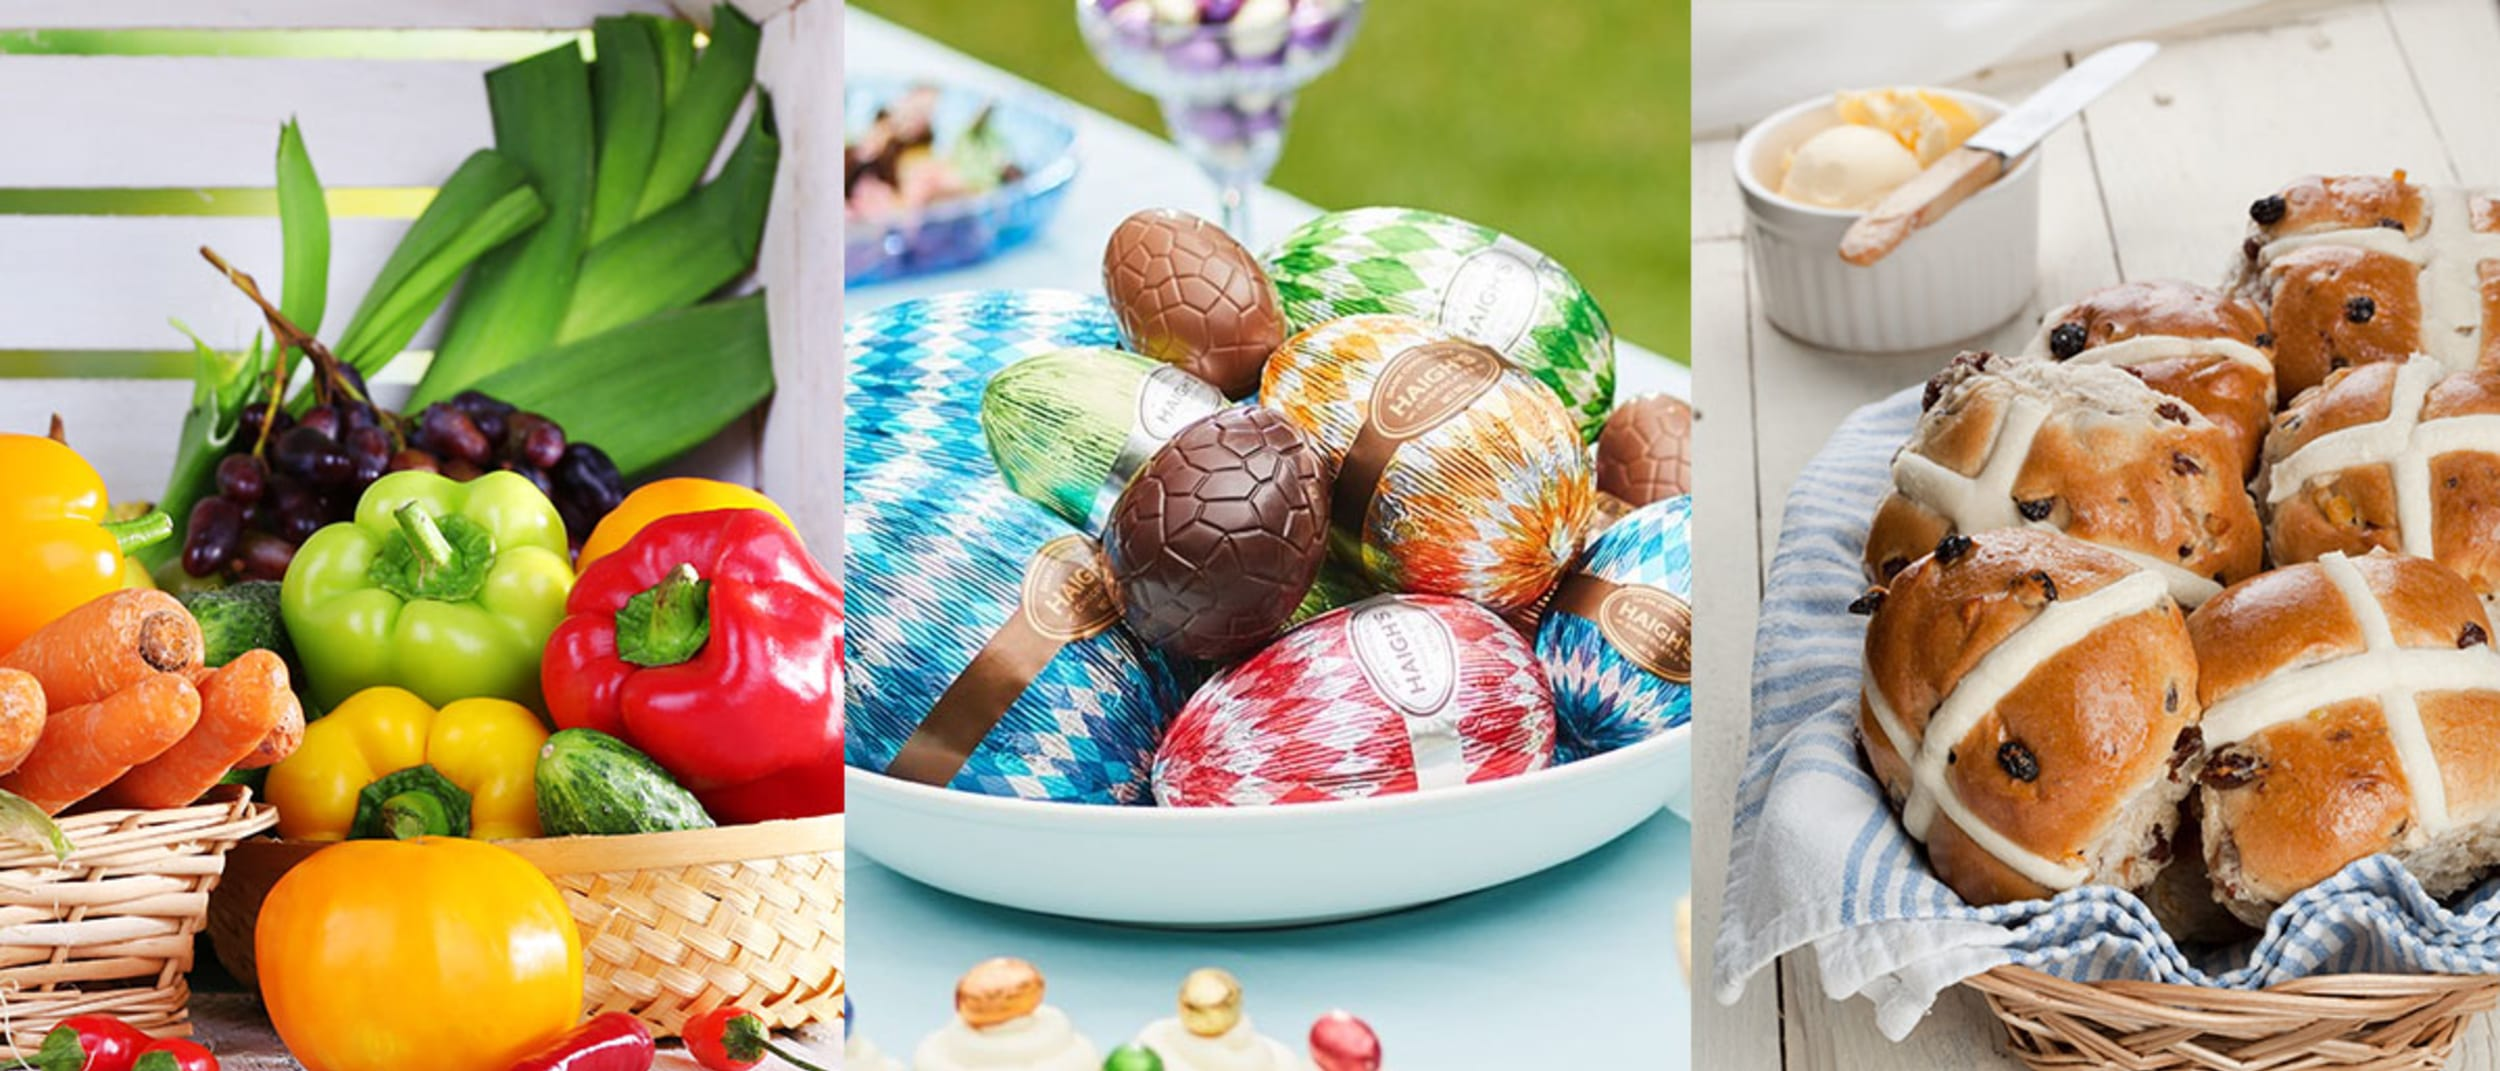 Build a Gourmet Easter Pack and receive a $20 Westfield Gift Card